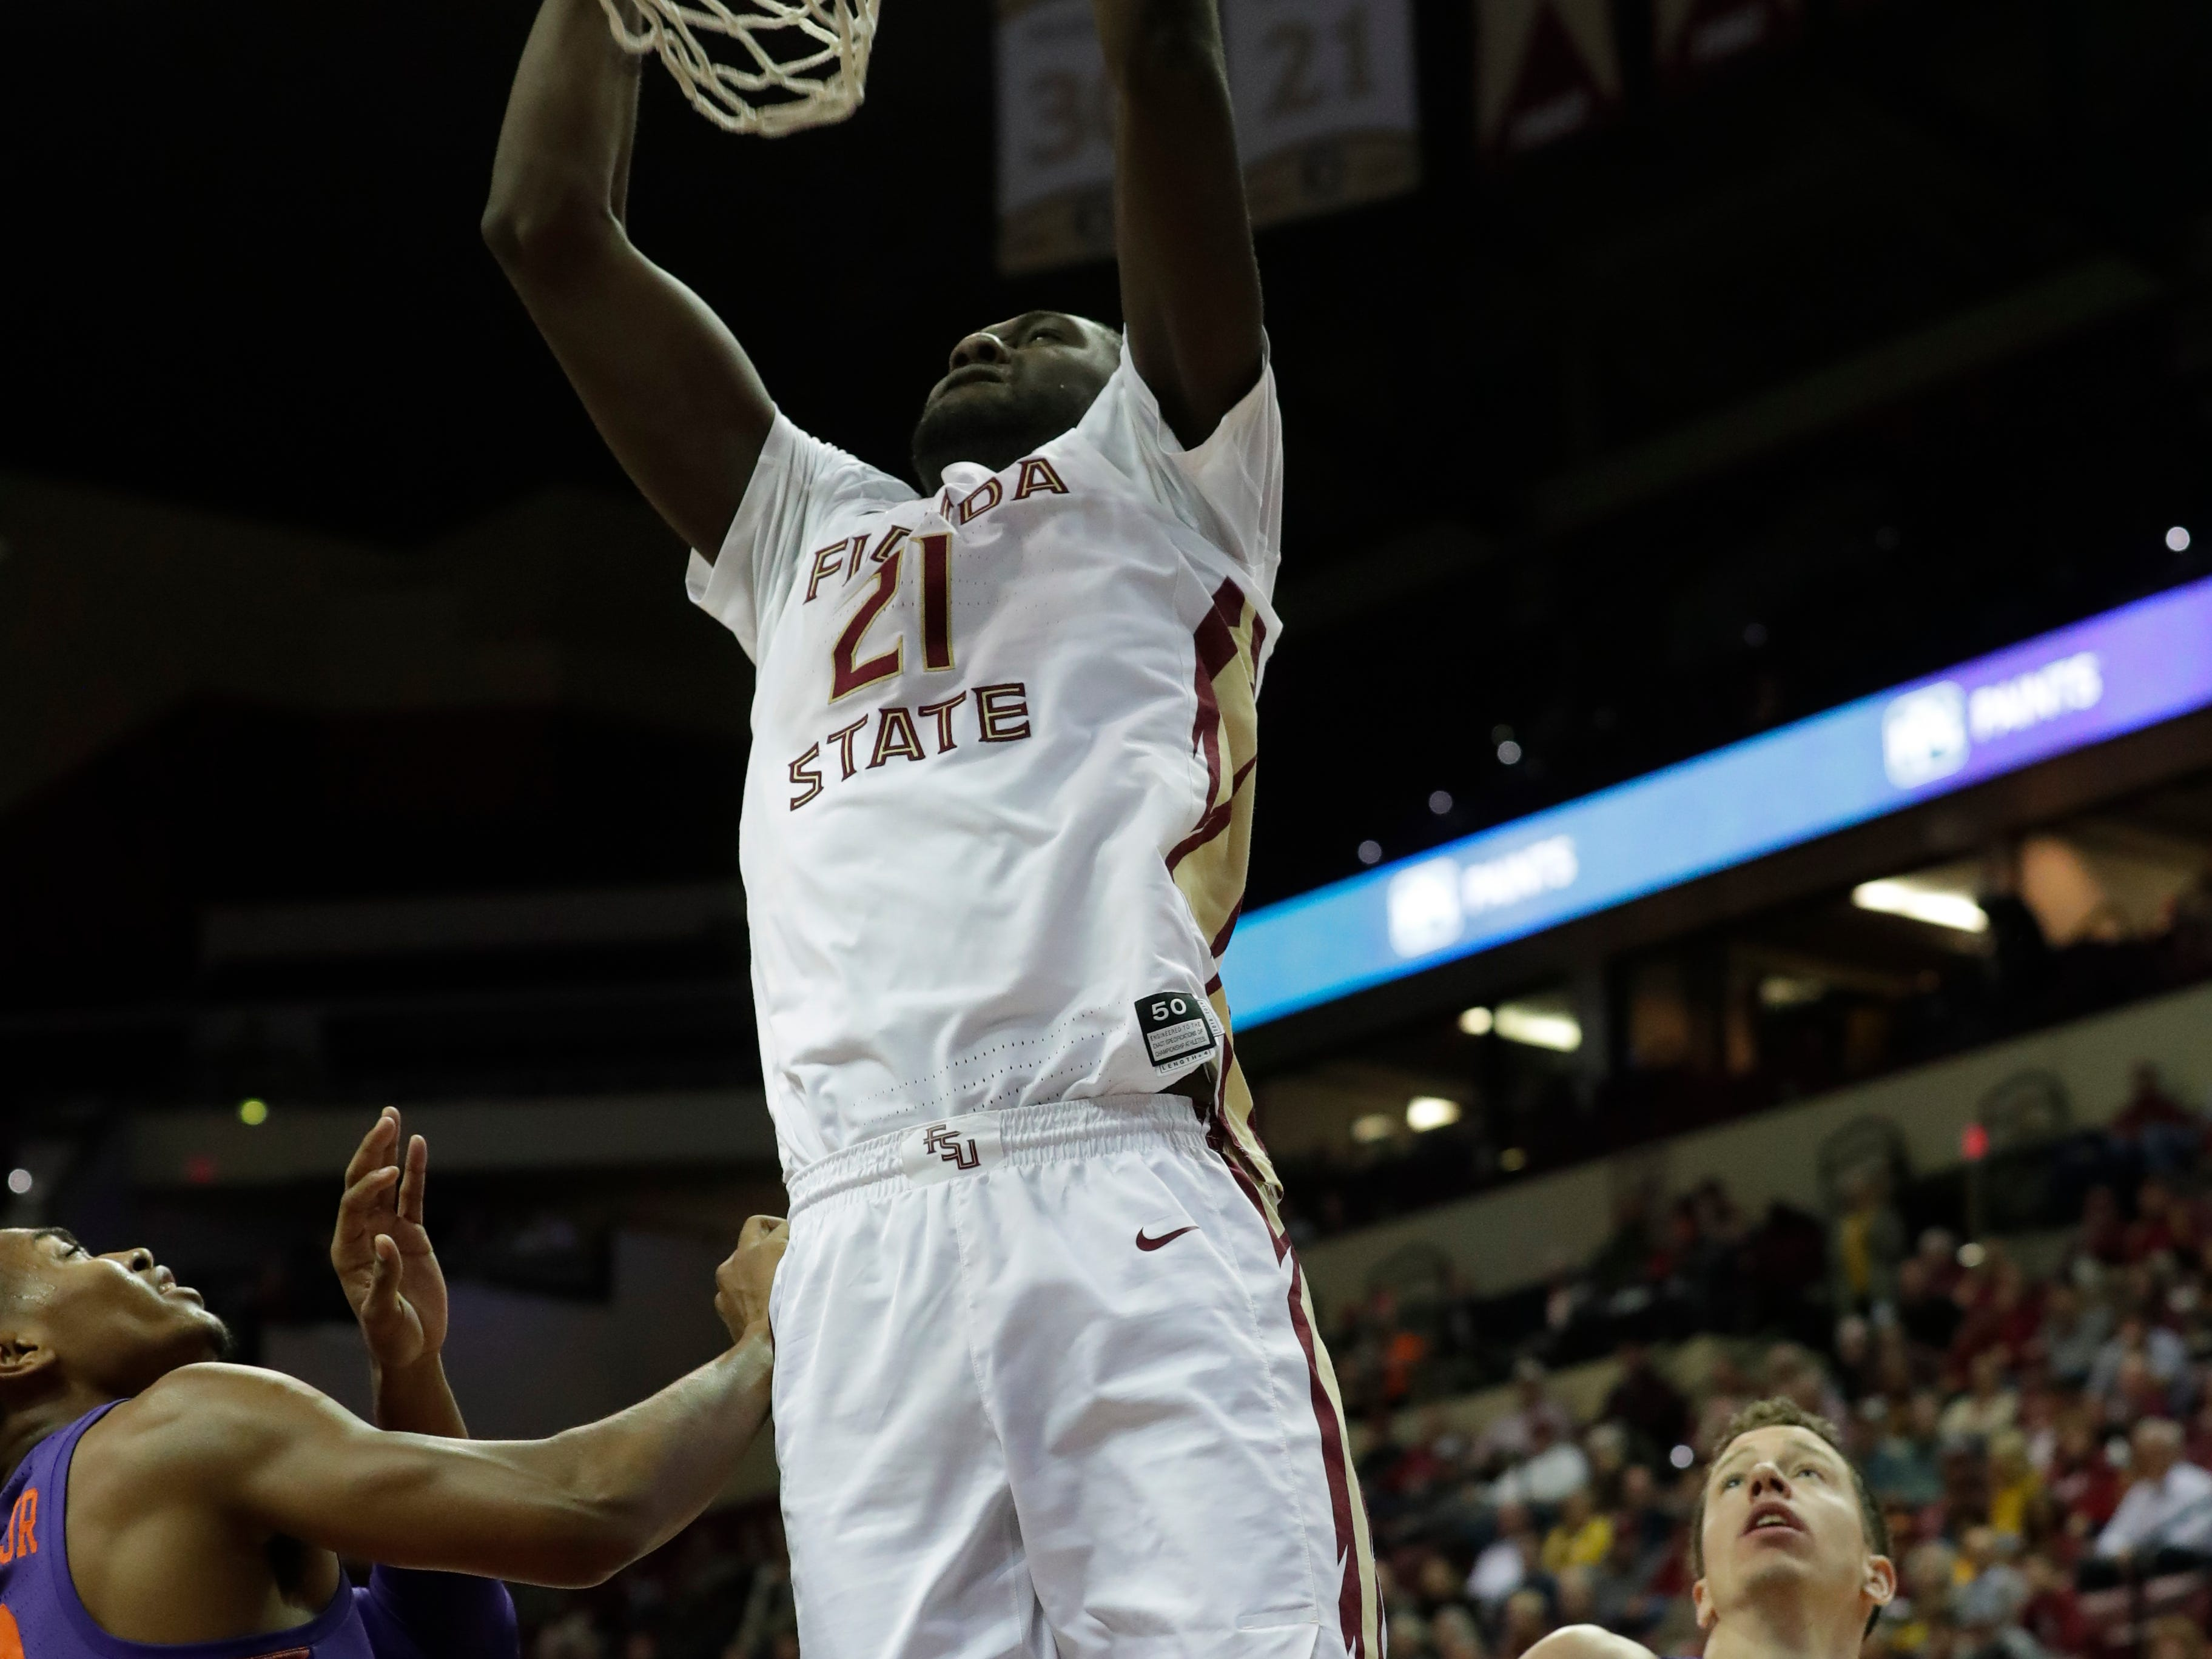 Florida State Seminoles center Christ Koumadje (21) dunks the ball on a defender. The Florida State Seminoles face off against the Clemson Tigers at the Tucker Civic Center, Tuesday, Jan. 22, 2019.